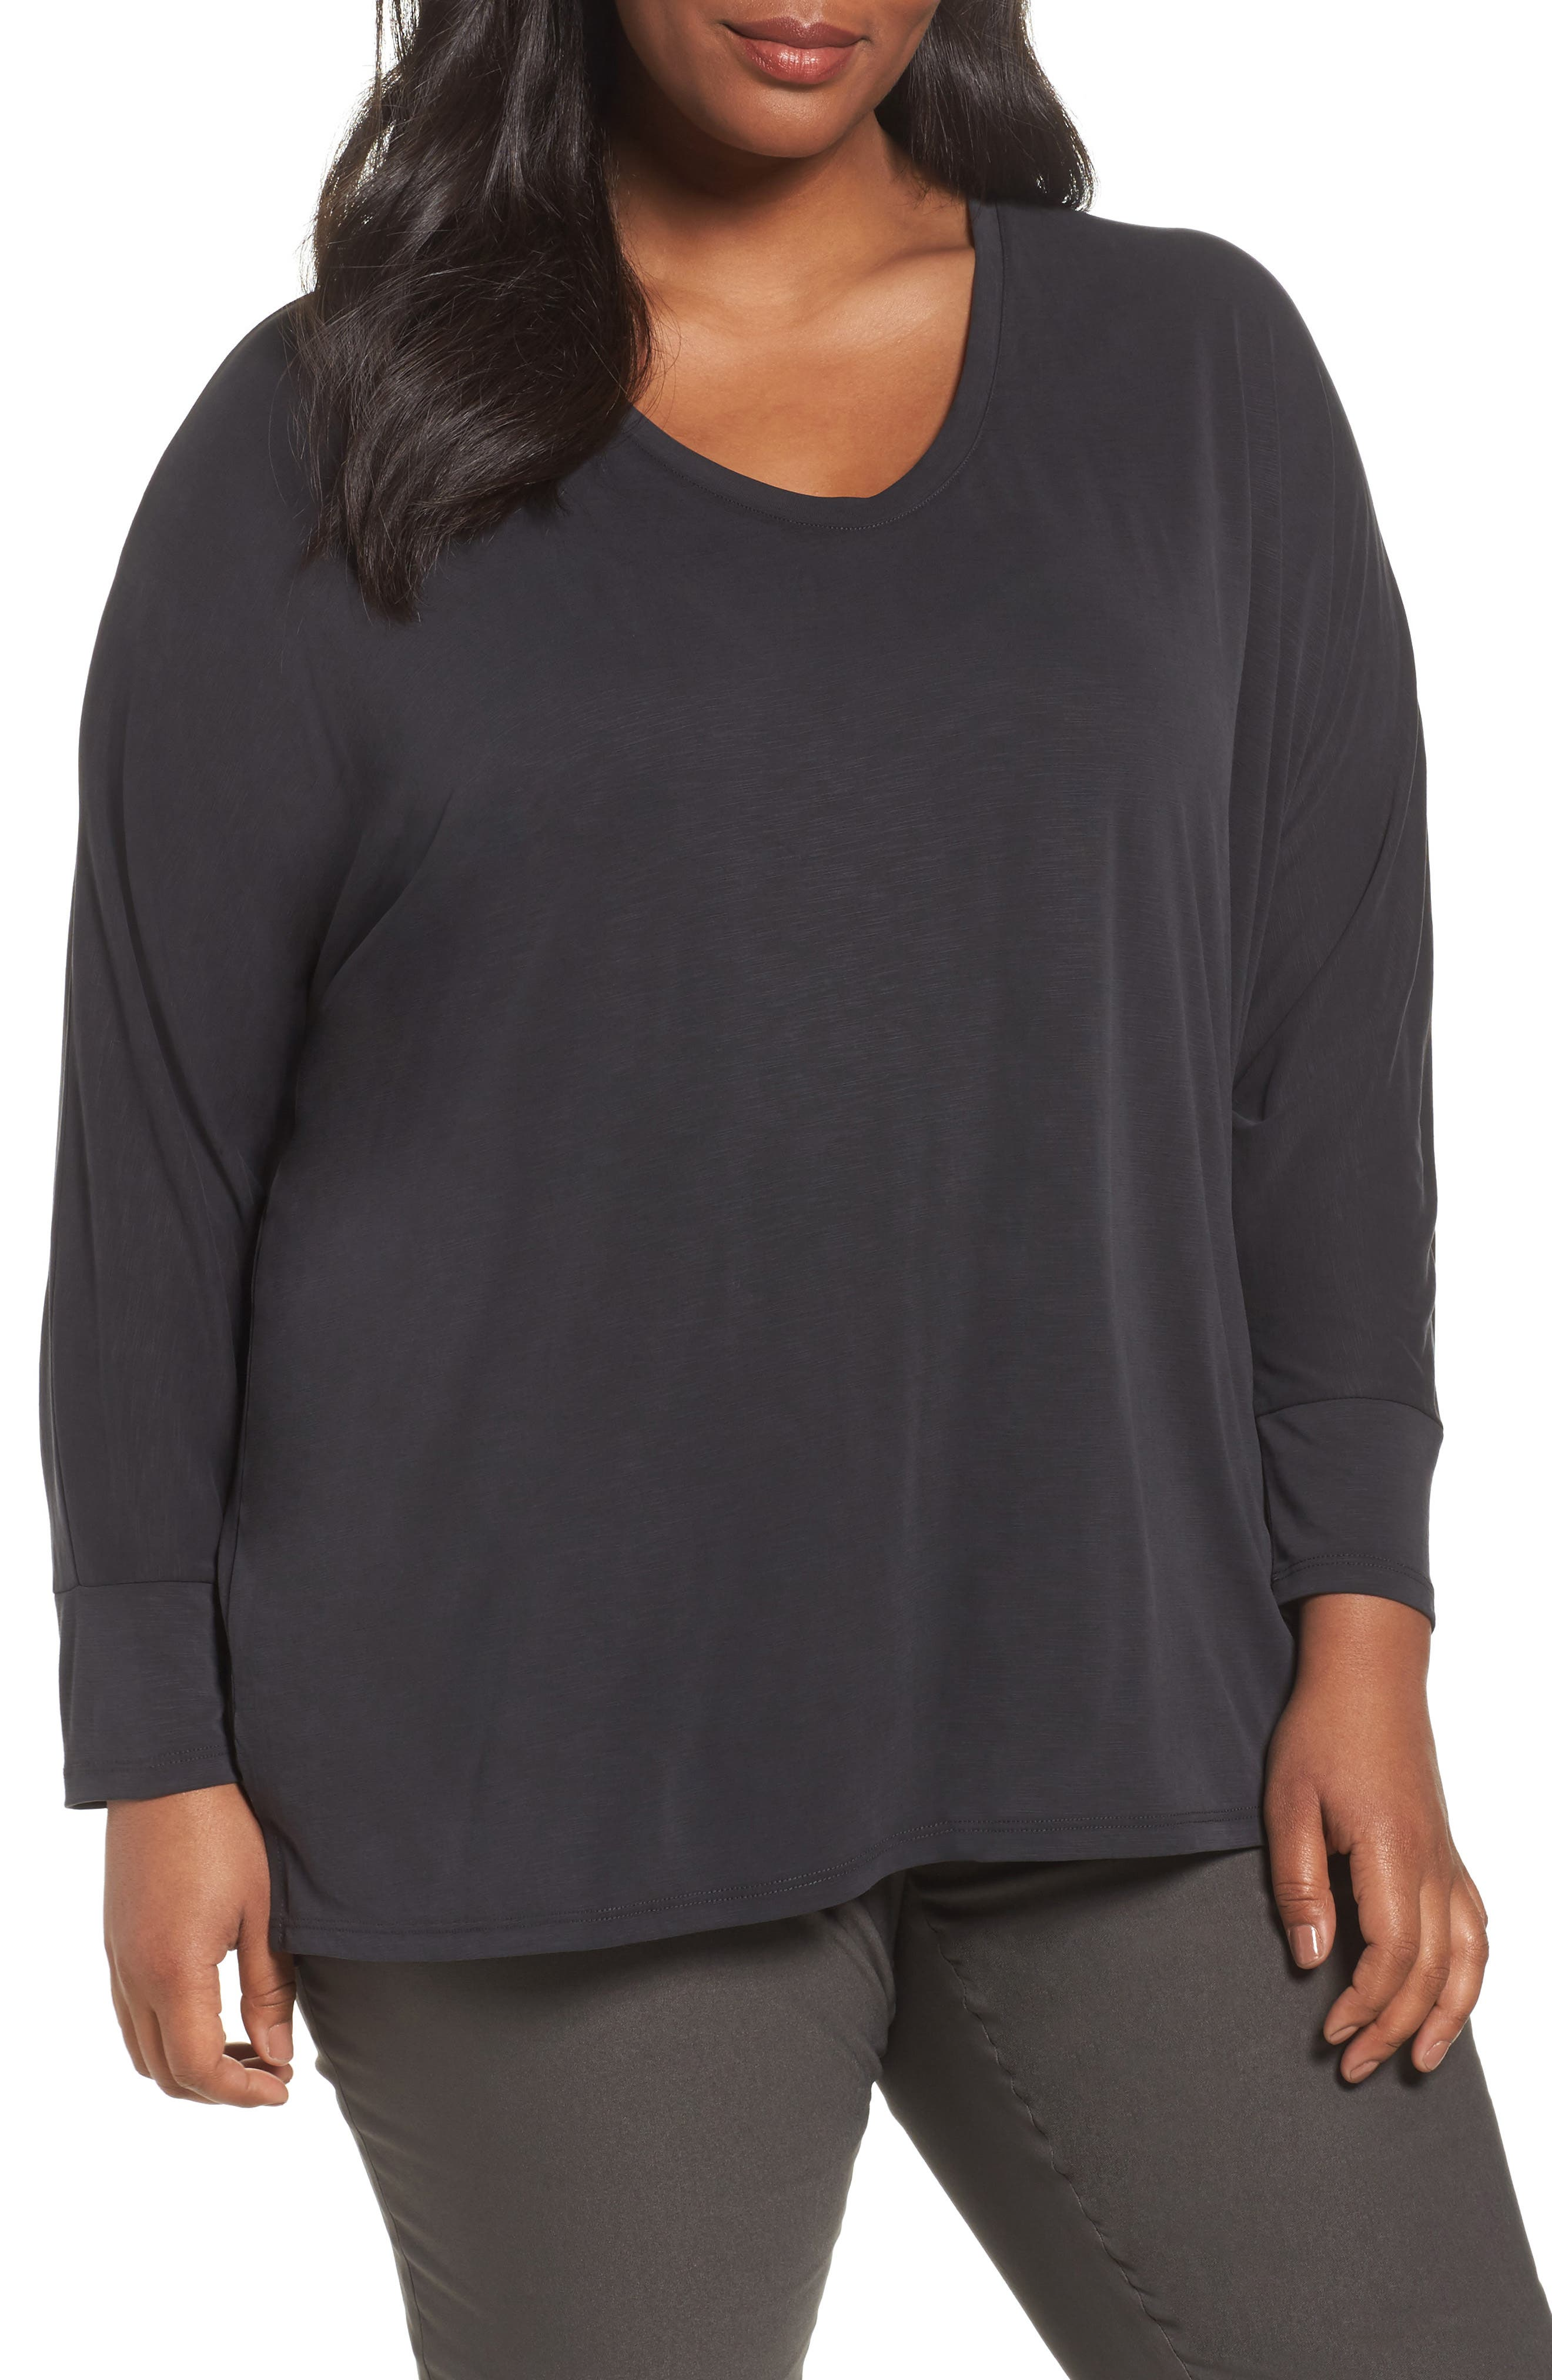 Cloud Nine Top,                         Main,                         color,